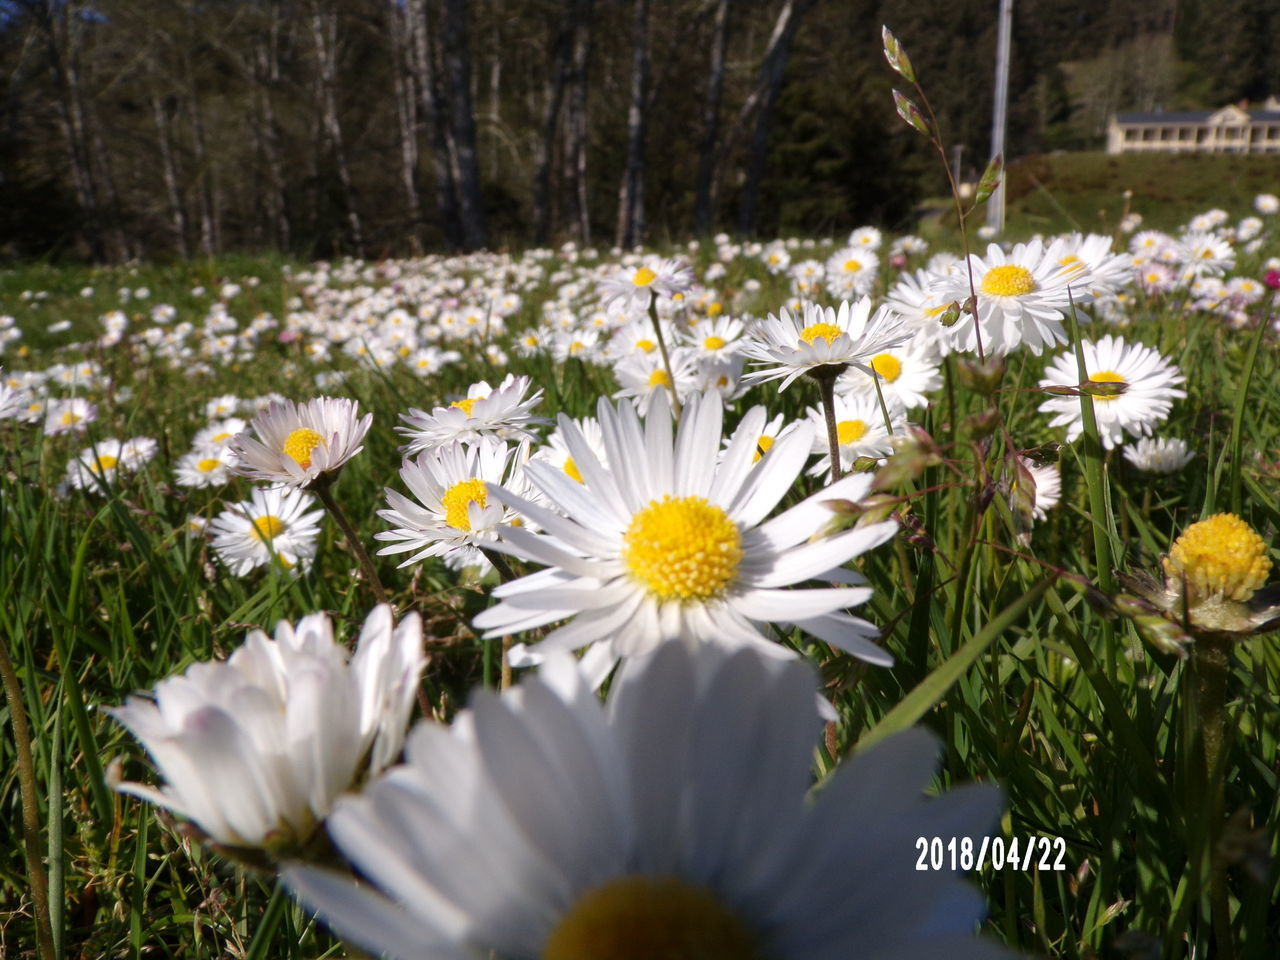 flowering plant, flower, plant, freshness, fragility, vulnerability, beauty in nature, growth, white color, petal, inflorescence, flower head, nature, close-up, land, day, daisy, pollen, field, selective focus, outdoors, no people, flowerbed